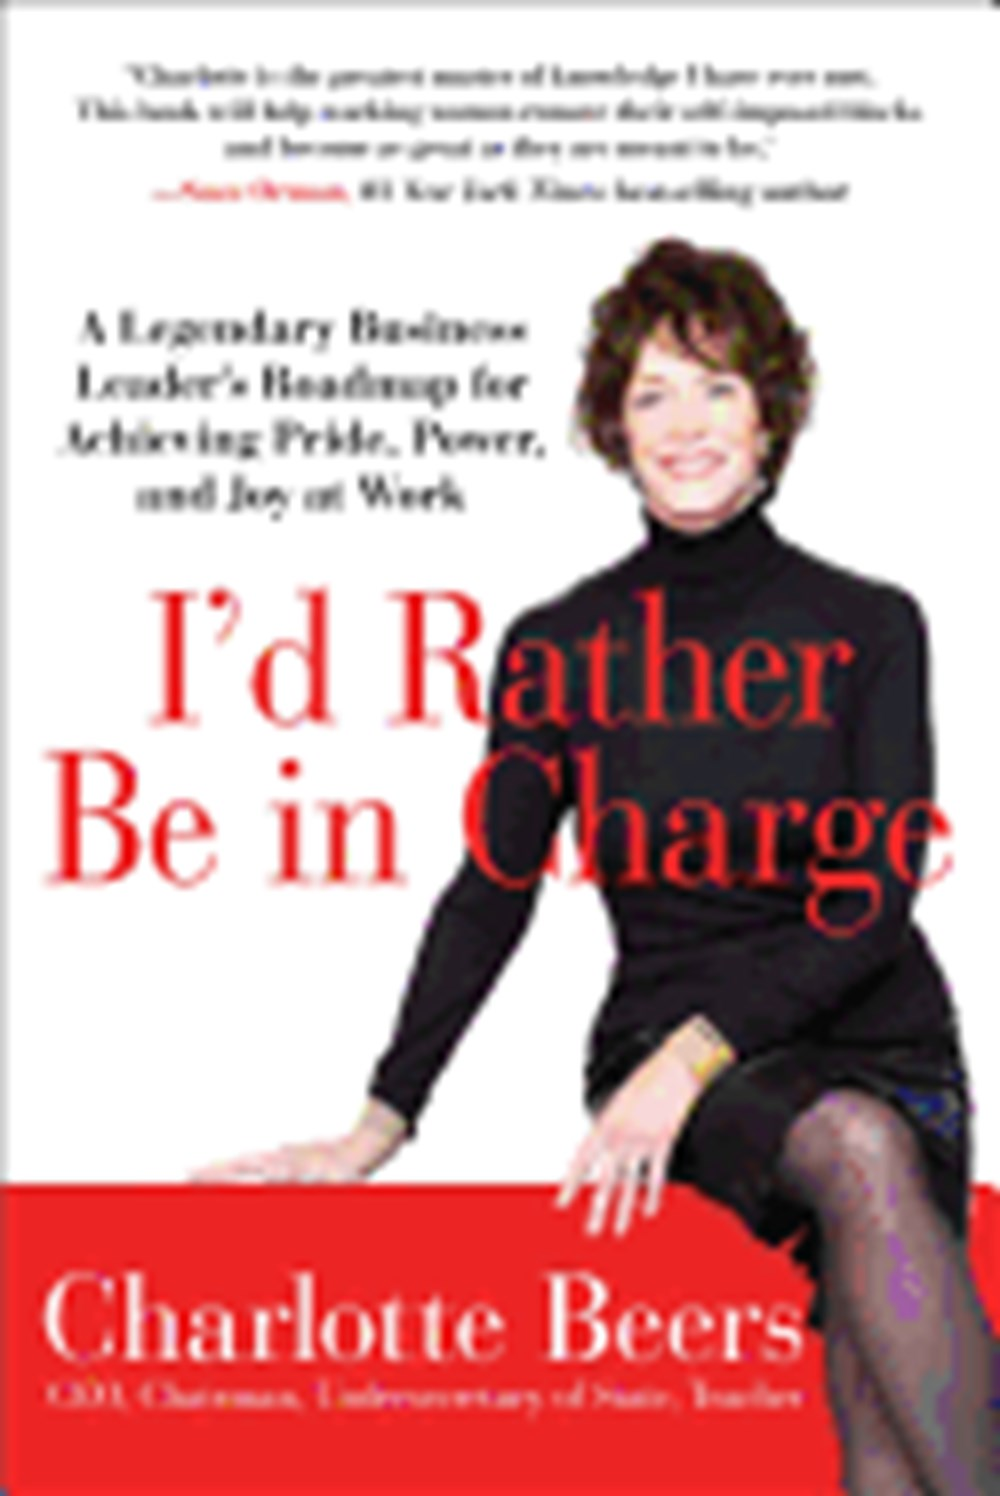 I'd Rather Be in Charge A Legendary Business Leader's Roadmap for Achieving Pride, Power, and Joy at